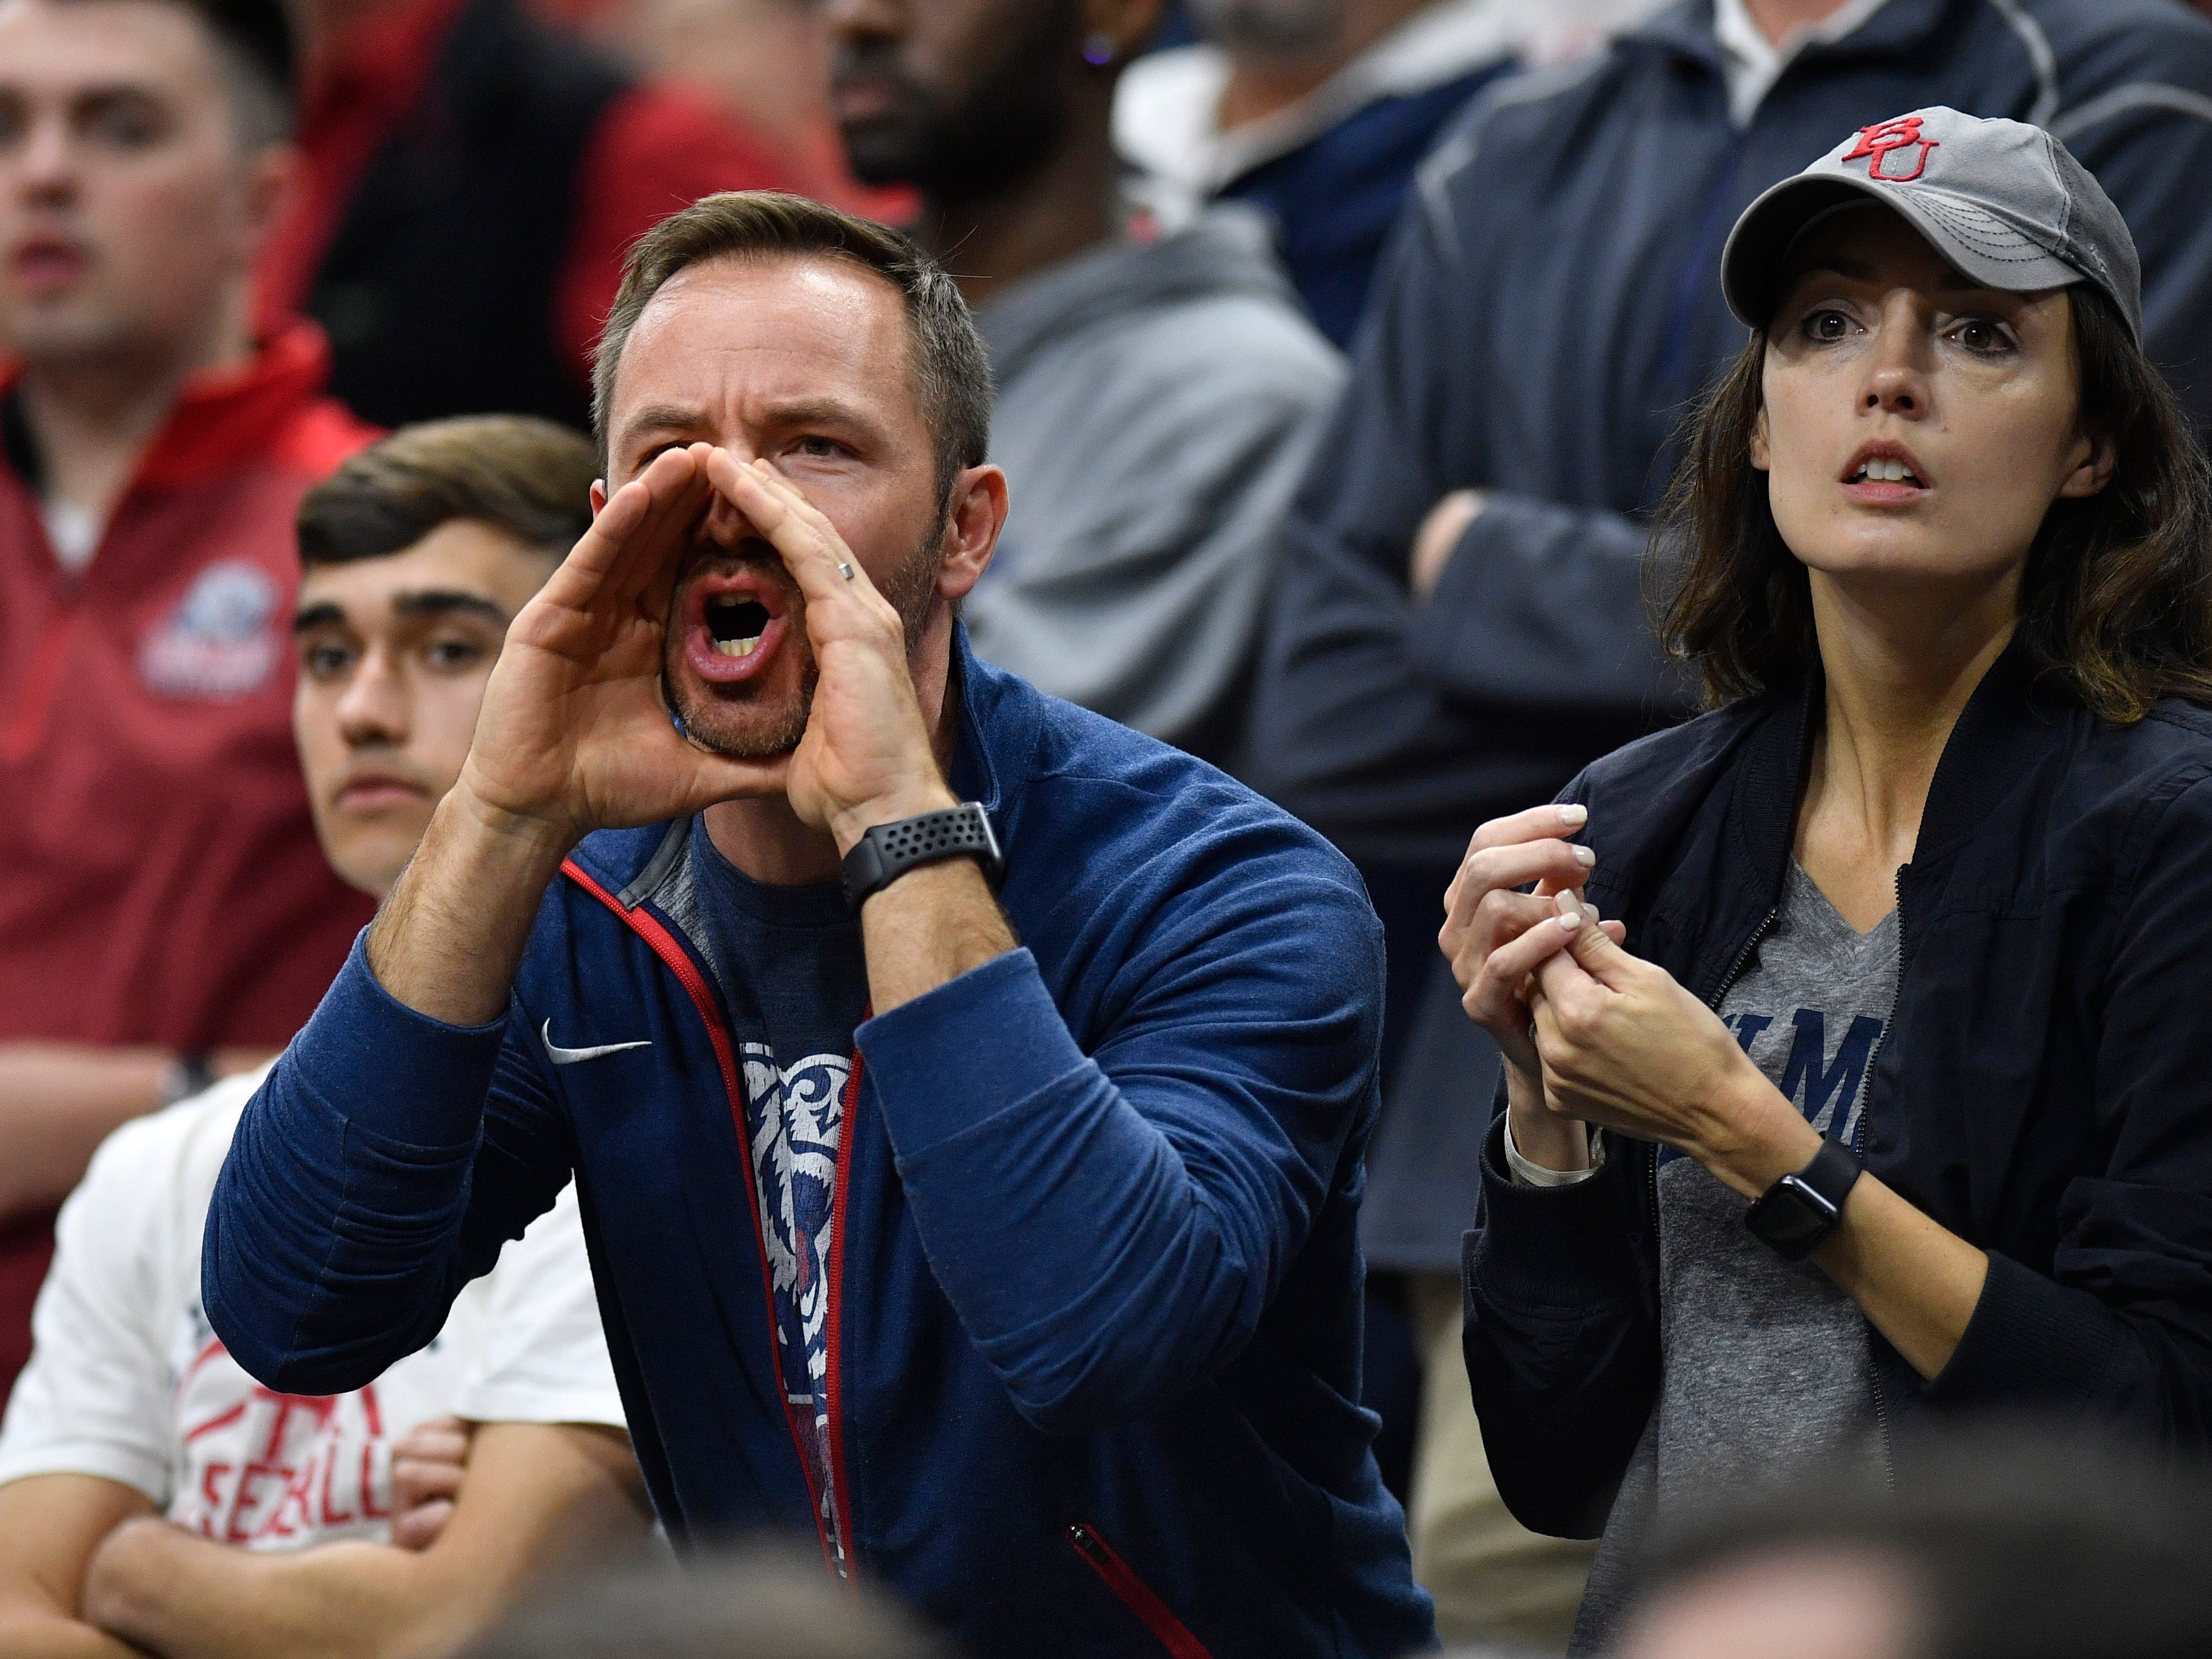 Belmont fans yell during the second half of the first-round NCAA college basketball tournament game against Maryland at VyStar Veterans Memorial Arena in Jacksonville, Fla., Thursday, March 21, 2019.